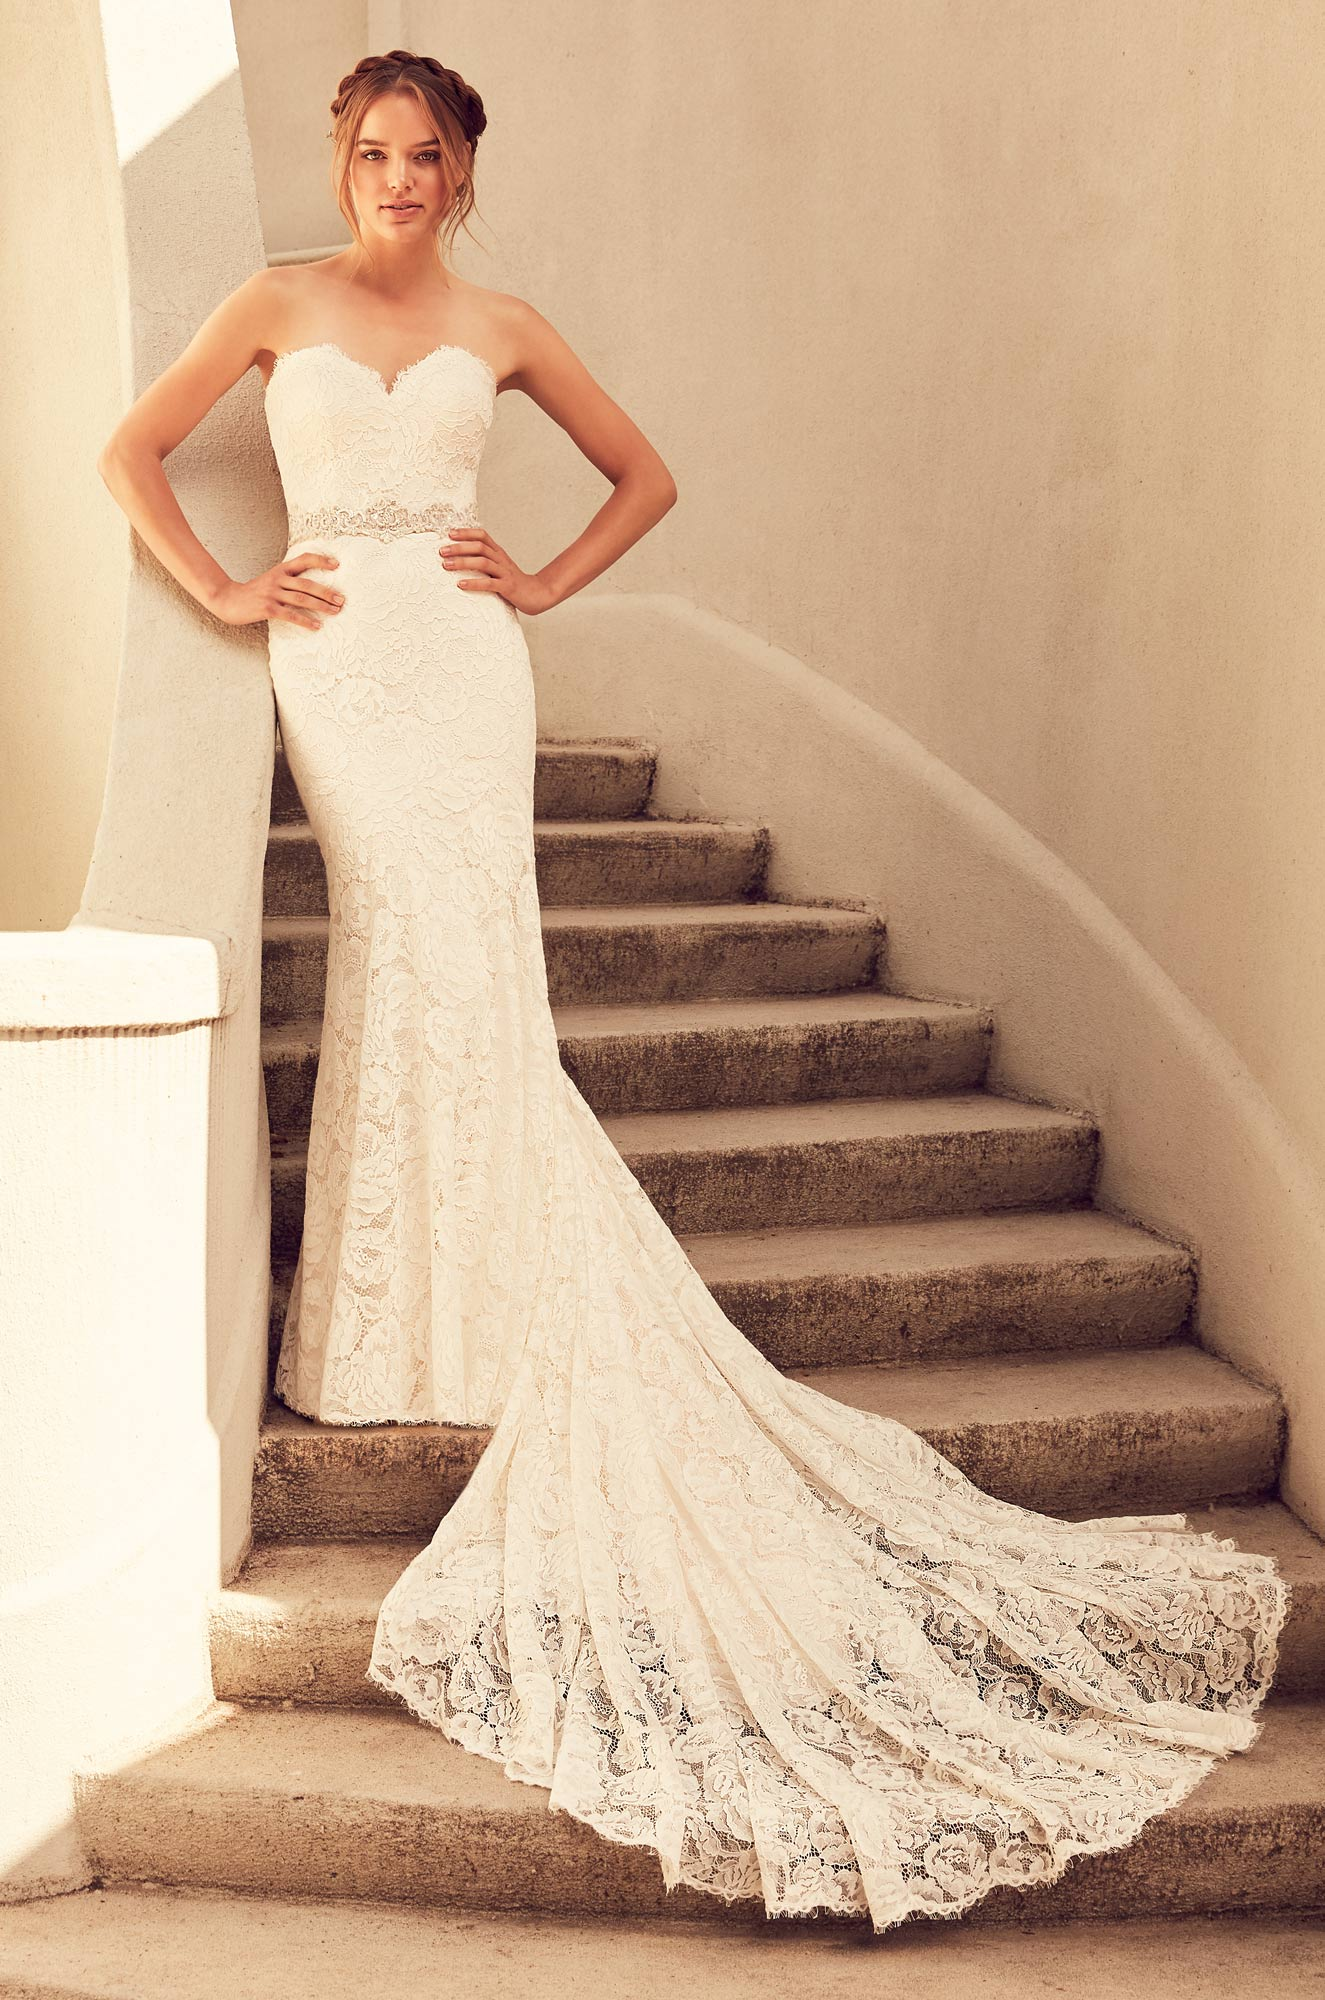 Fully Laced Swetheart Neckline Fit And Flare Wedding Dress Kleinfeld Bridal